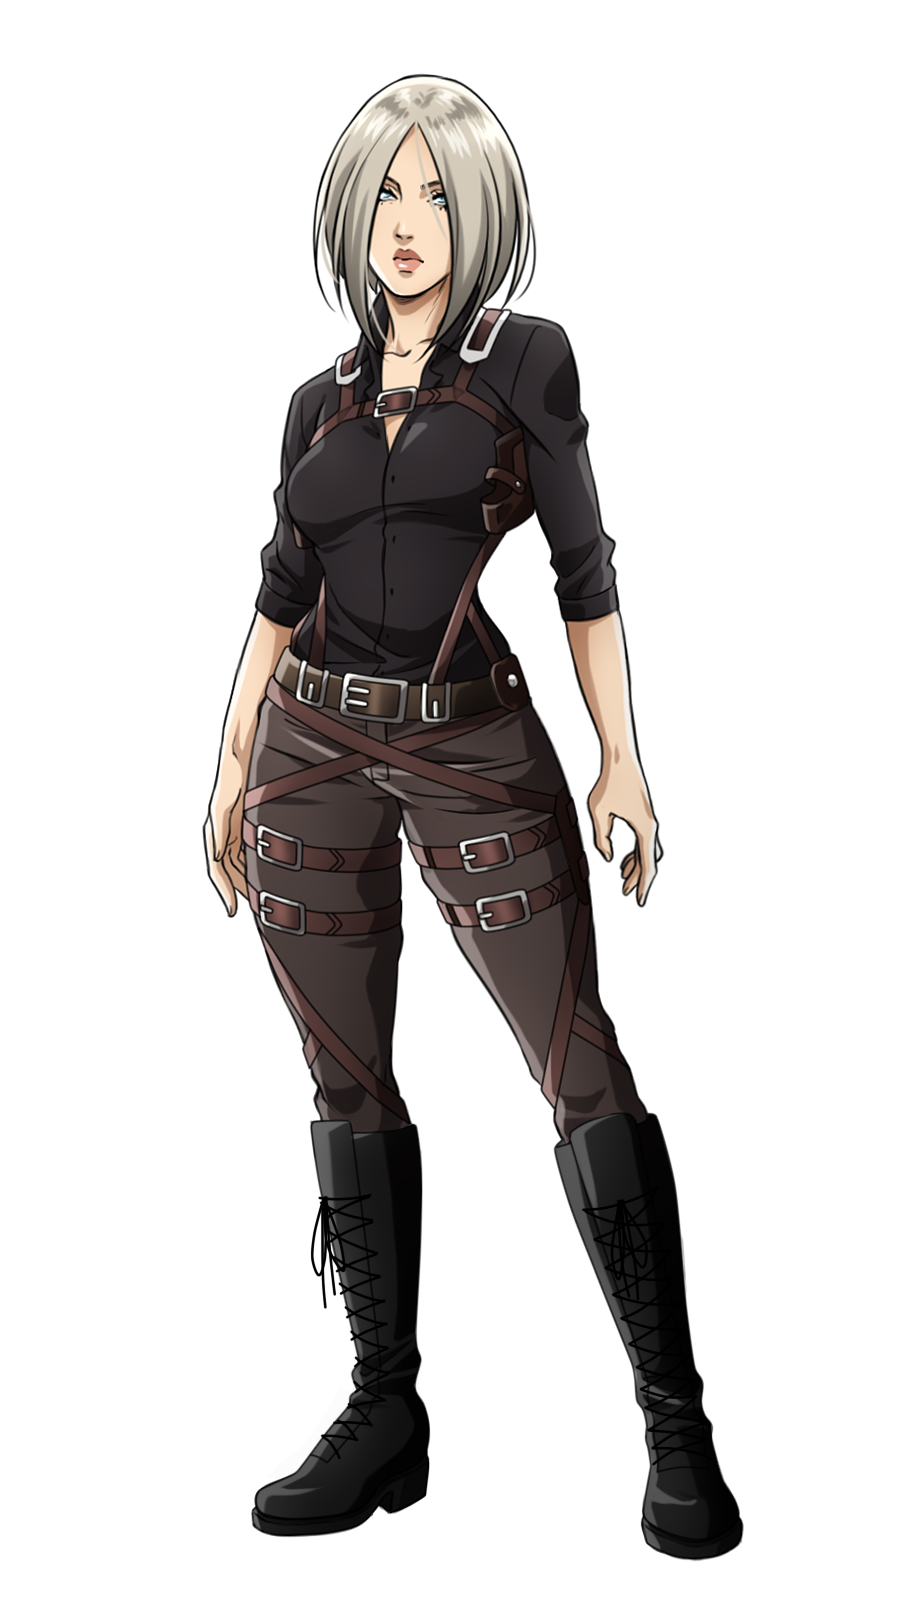 And this lovely badass Mikasa in back 😍 Tytani atakują